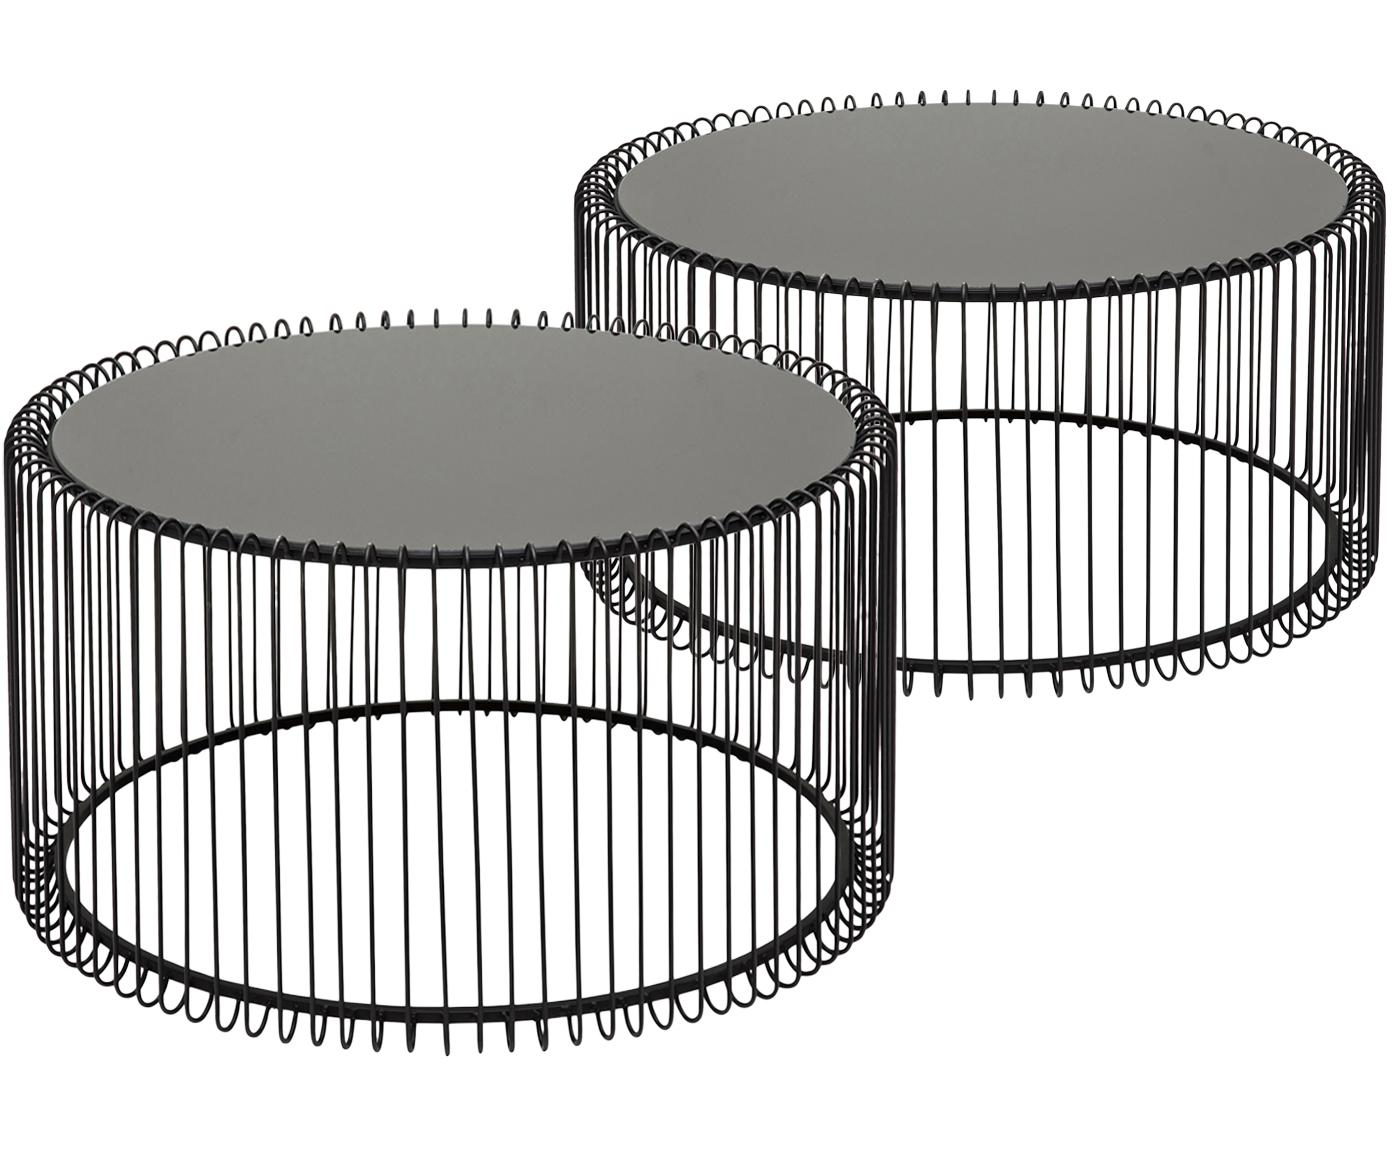 Metall-Couchtisch 2er-Set Wire mit Glasplatte, Gestell: Metall, pulverbeschichtet, Tischplatte: Sicherheitsglas, foliert, Schwarz, Sondergrößen